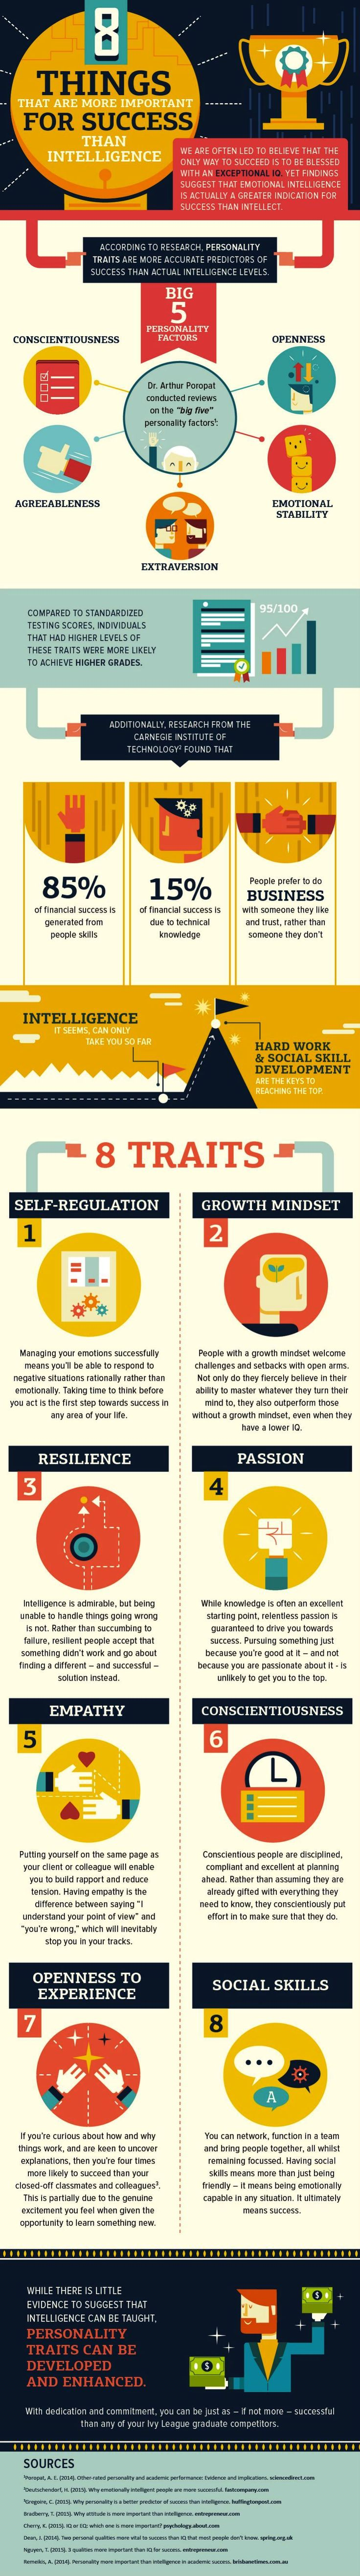 09a96dd5696de1fafca63e326191ef83 Marketing Infographic : #Infographic: 8 Things that are more Important for Success than Intelligence ...